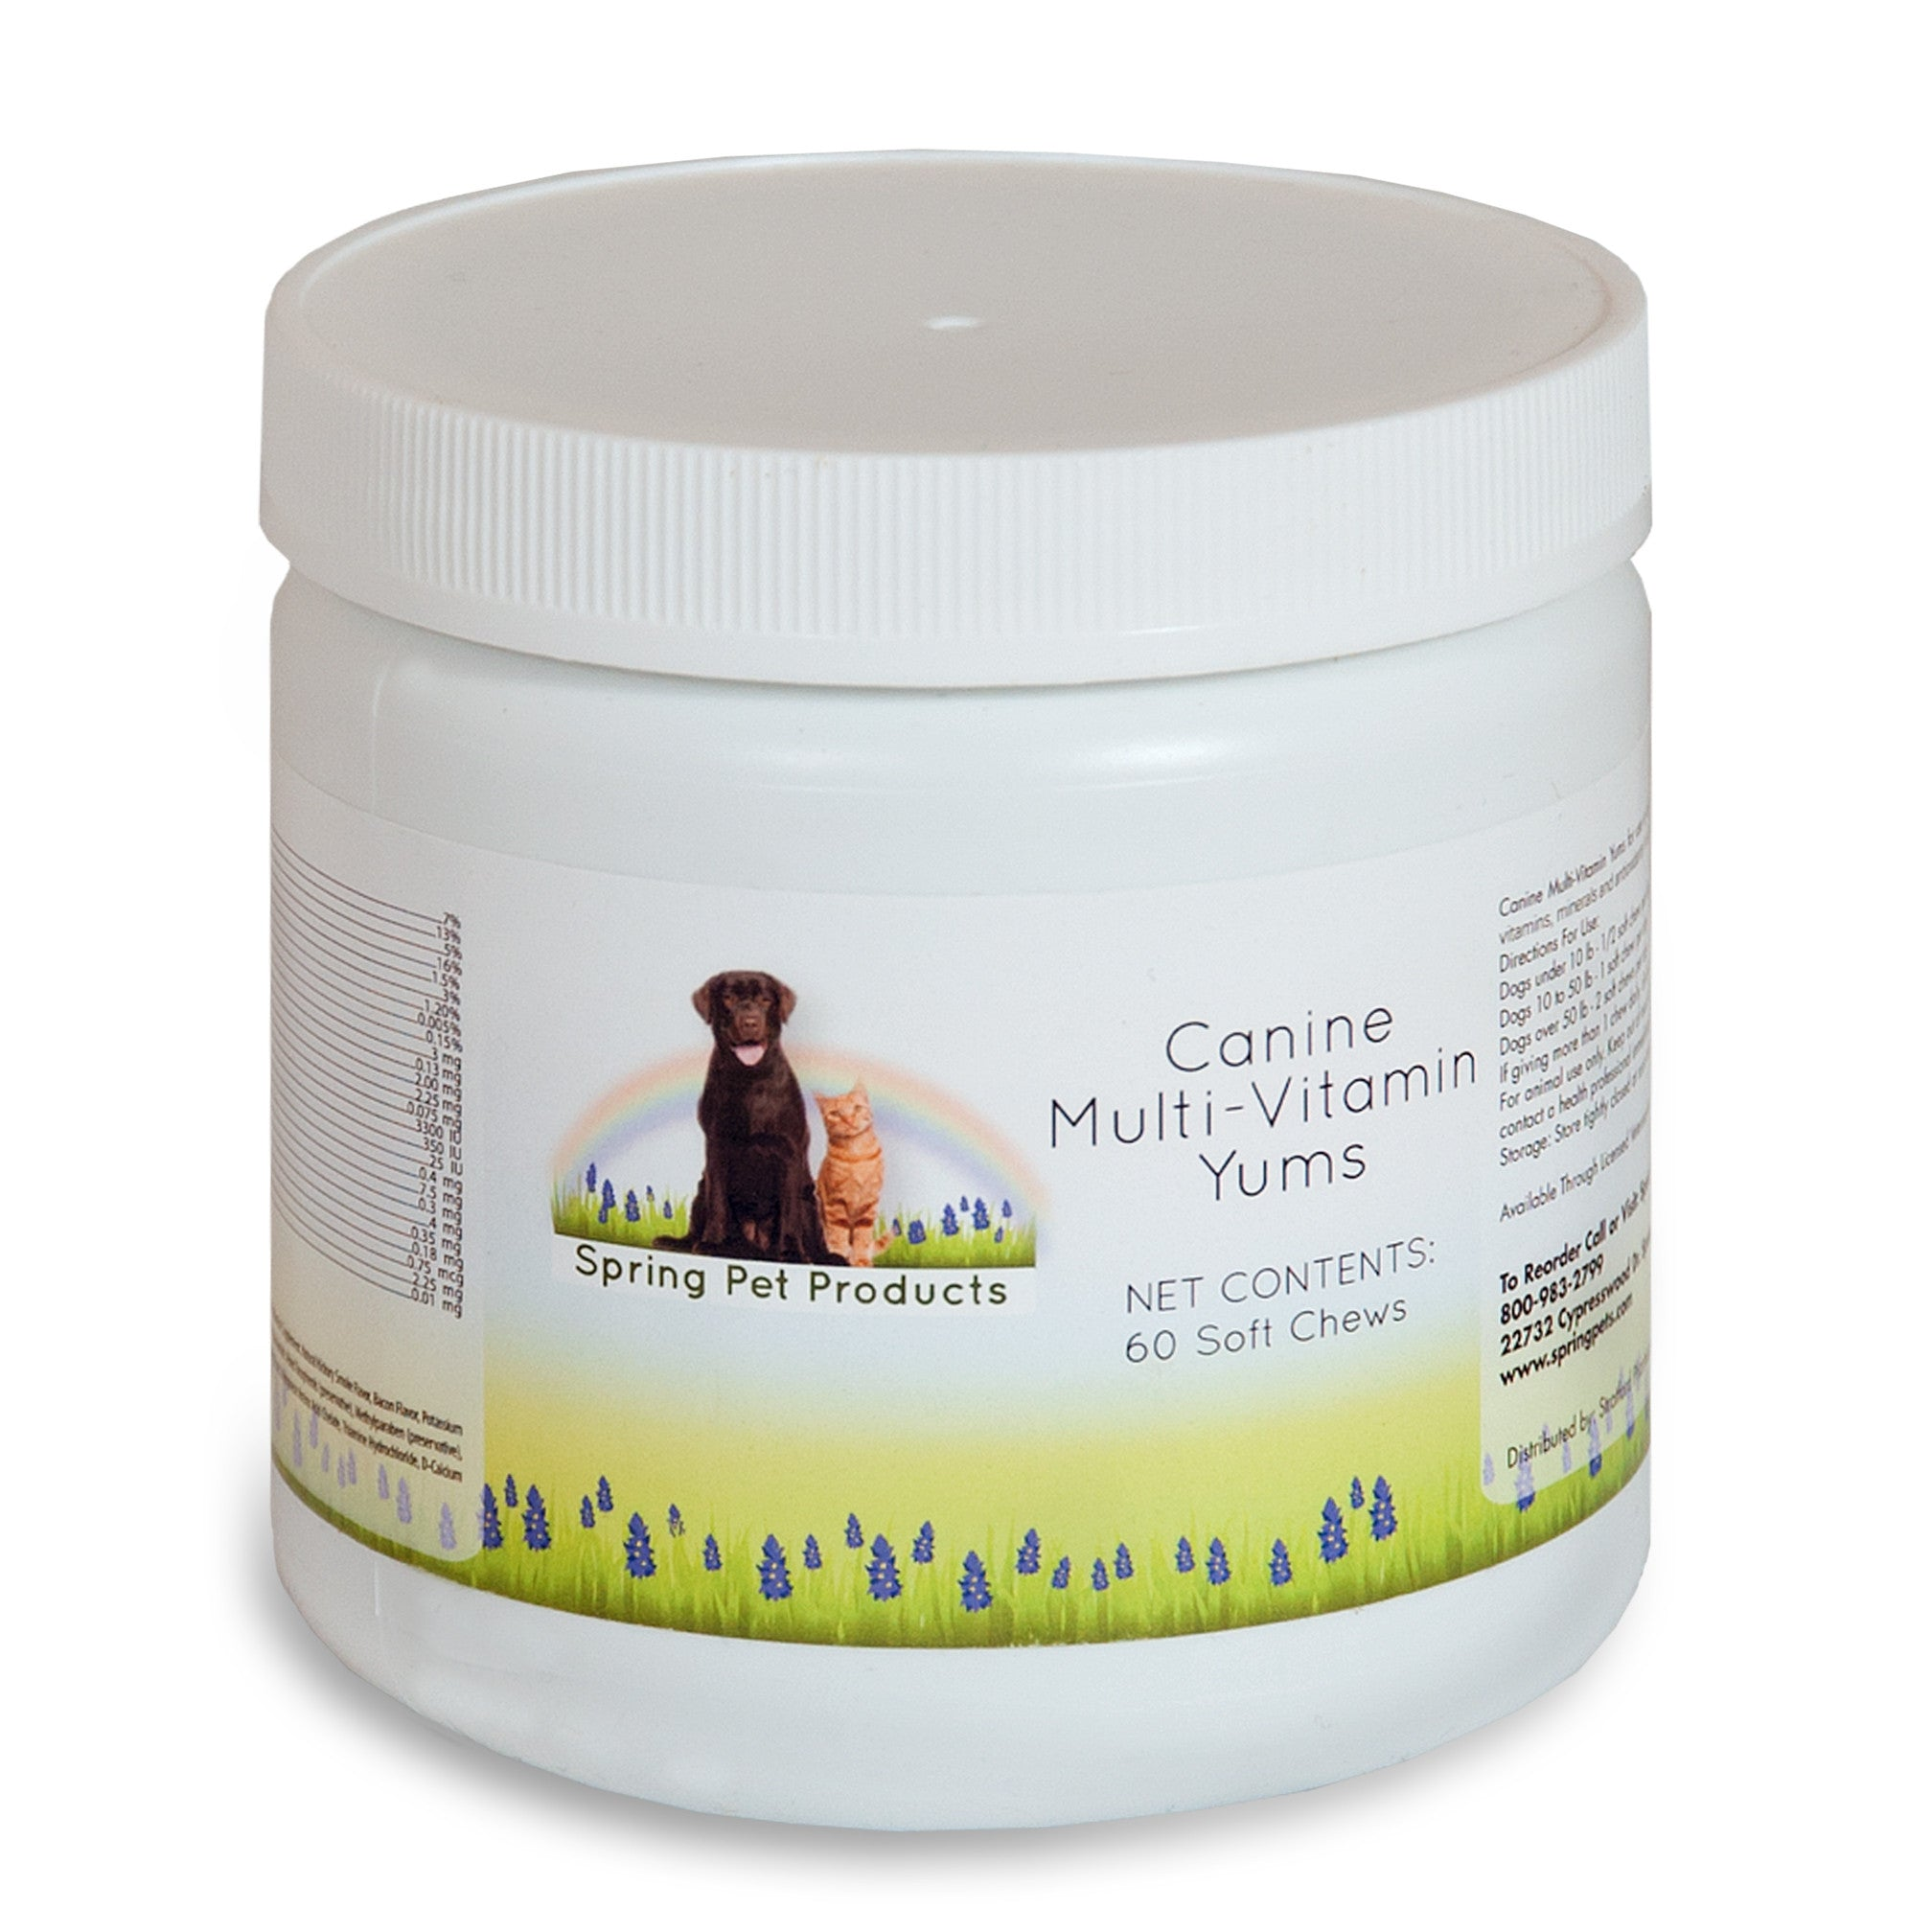 Canine Multi Vitamin Yums